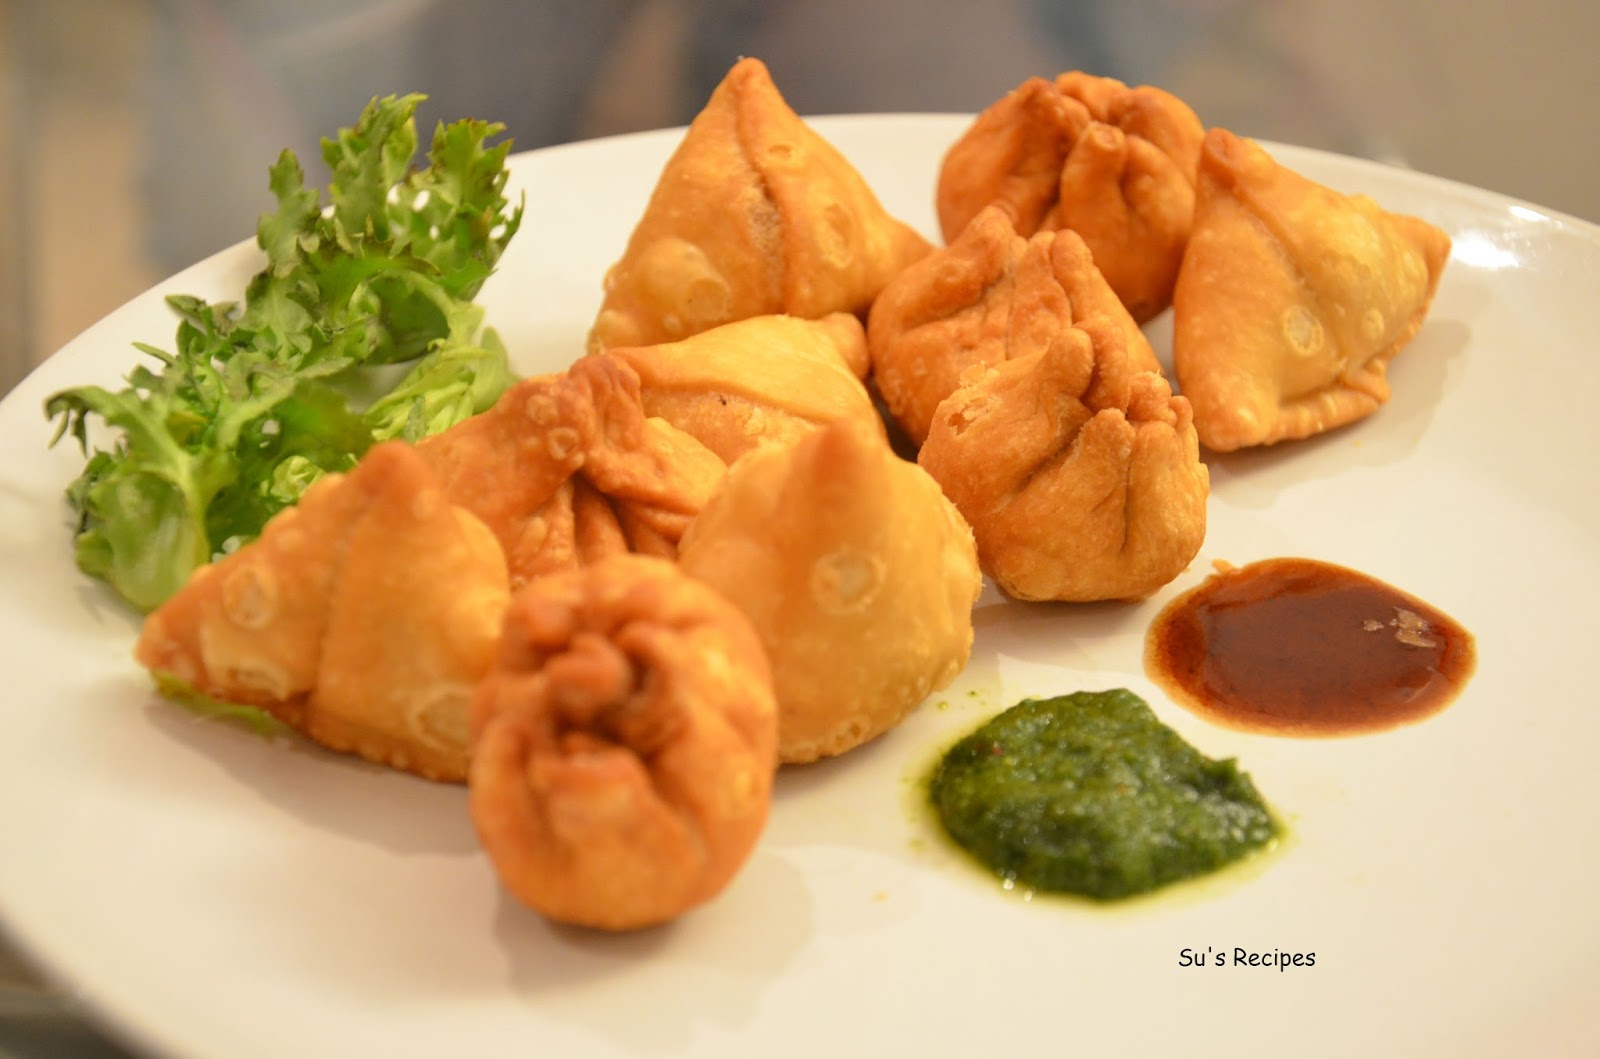 mini, potli, samosa, chaats, indian, pakistan, snack, appetiser, appetizer, indian street food